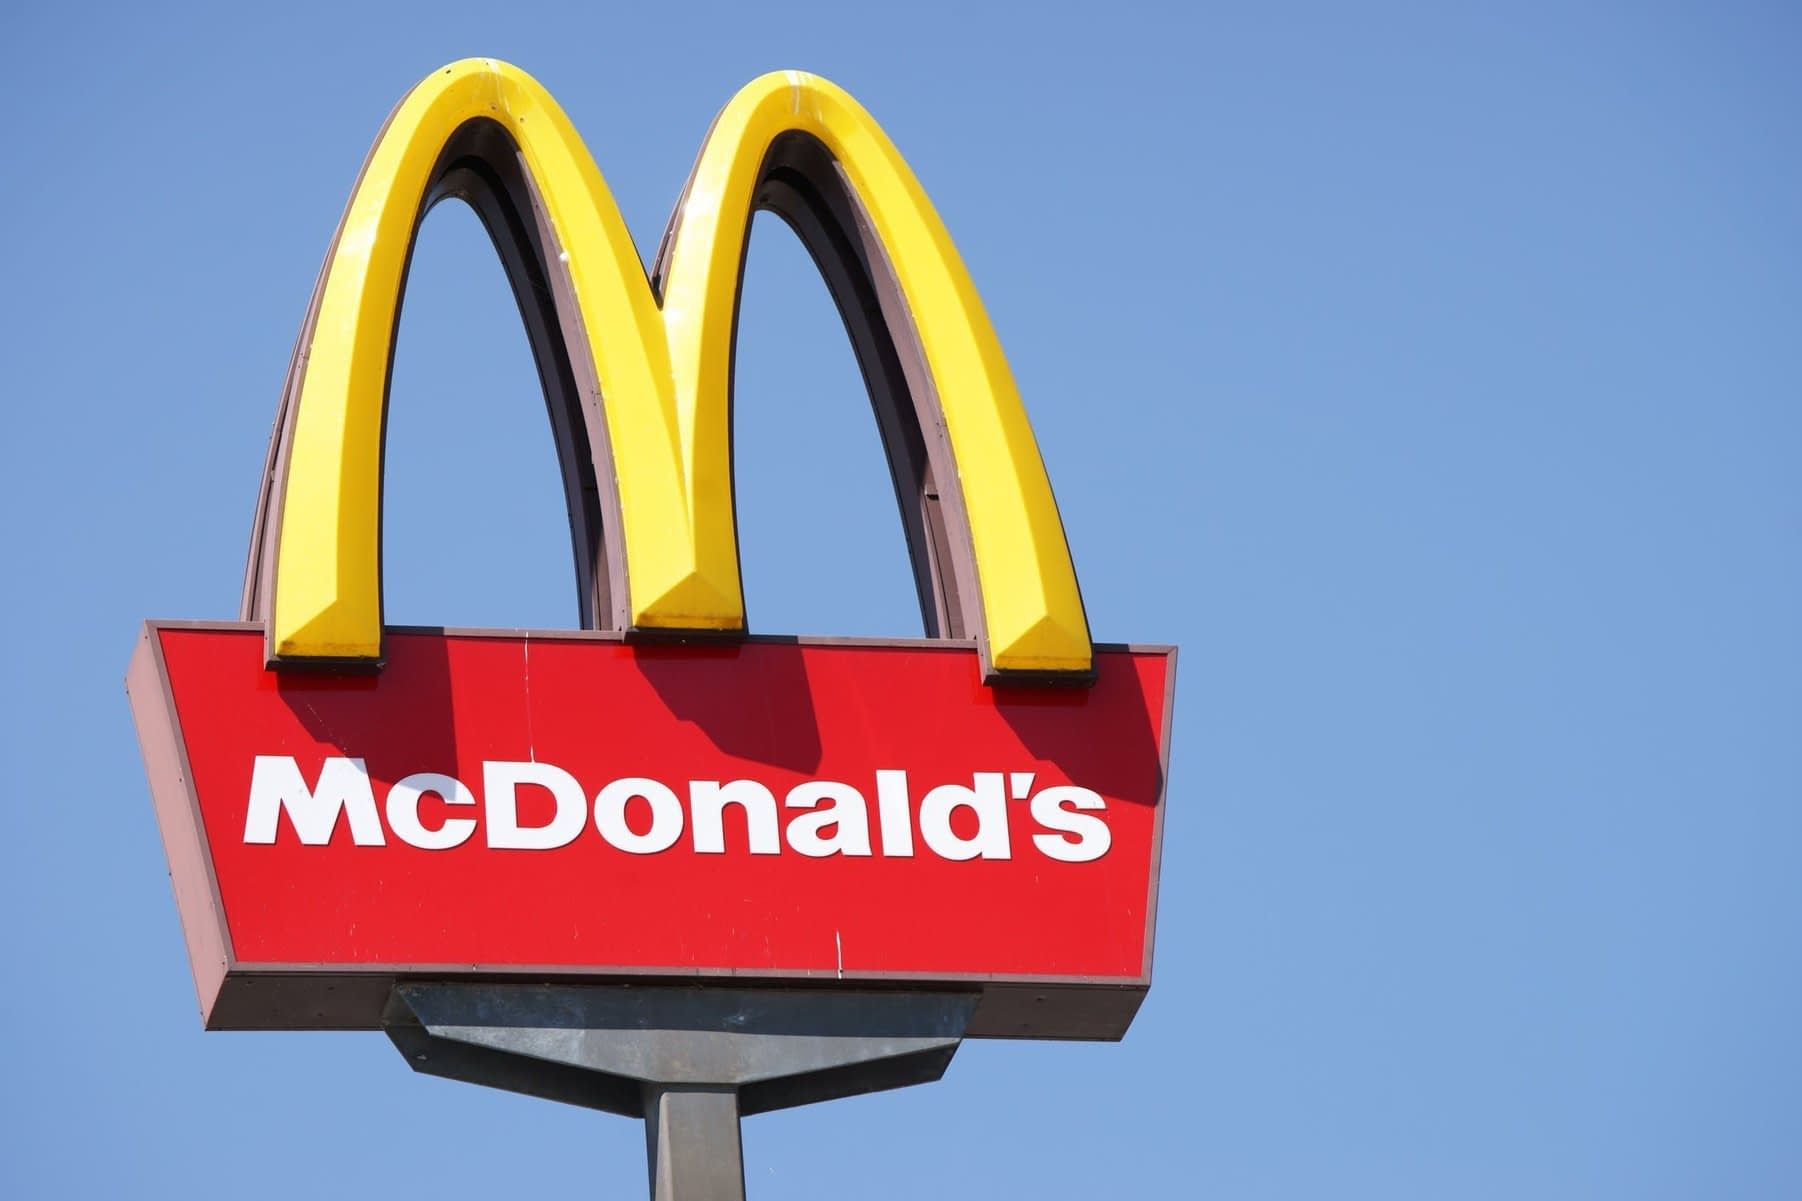 , McDonald's to scrap McFlurry lids and single use plastic salad bowls – The change will come into force across all UK restaurants from September, TheCircularEconomy.com